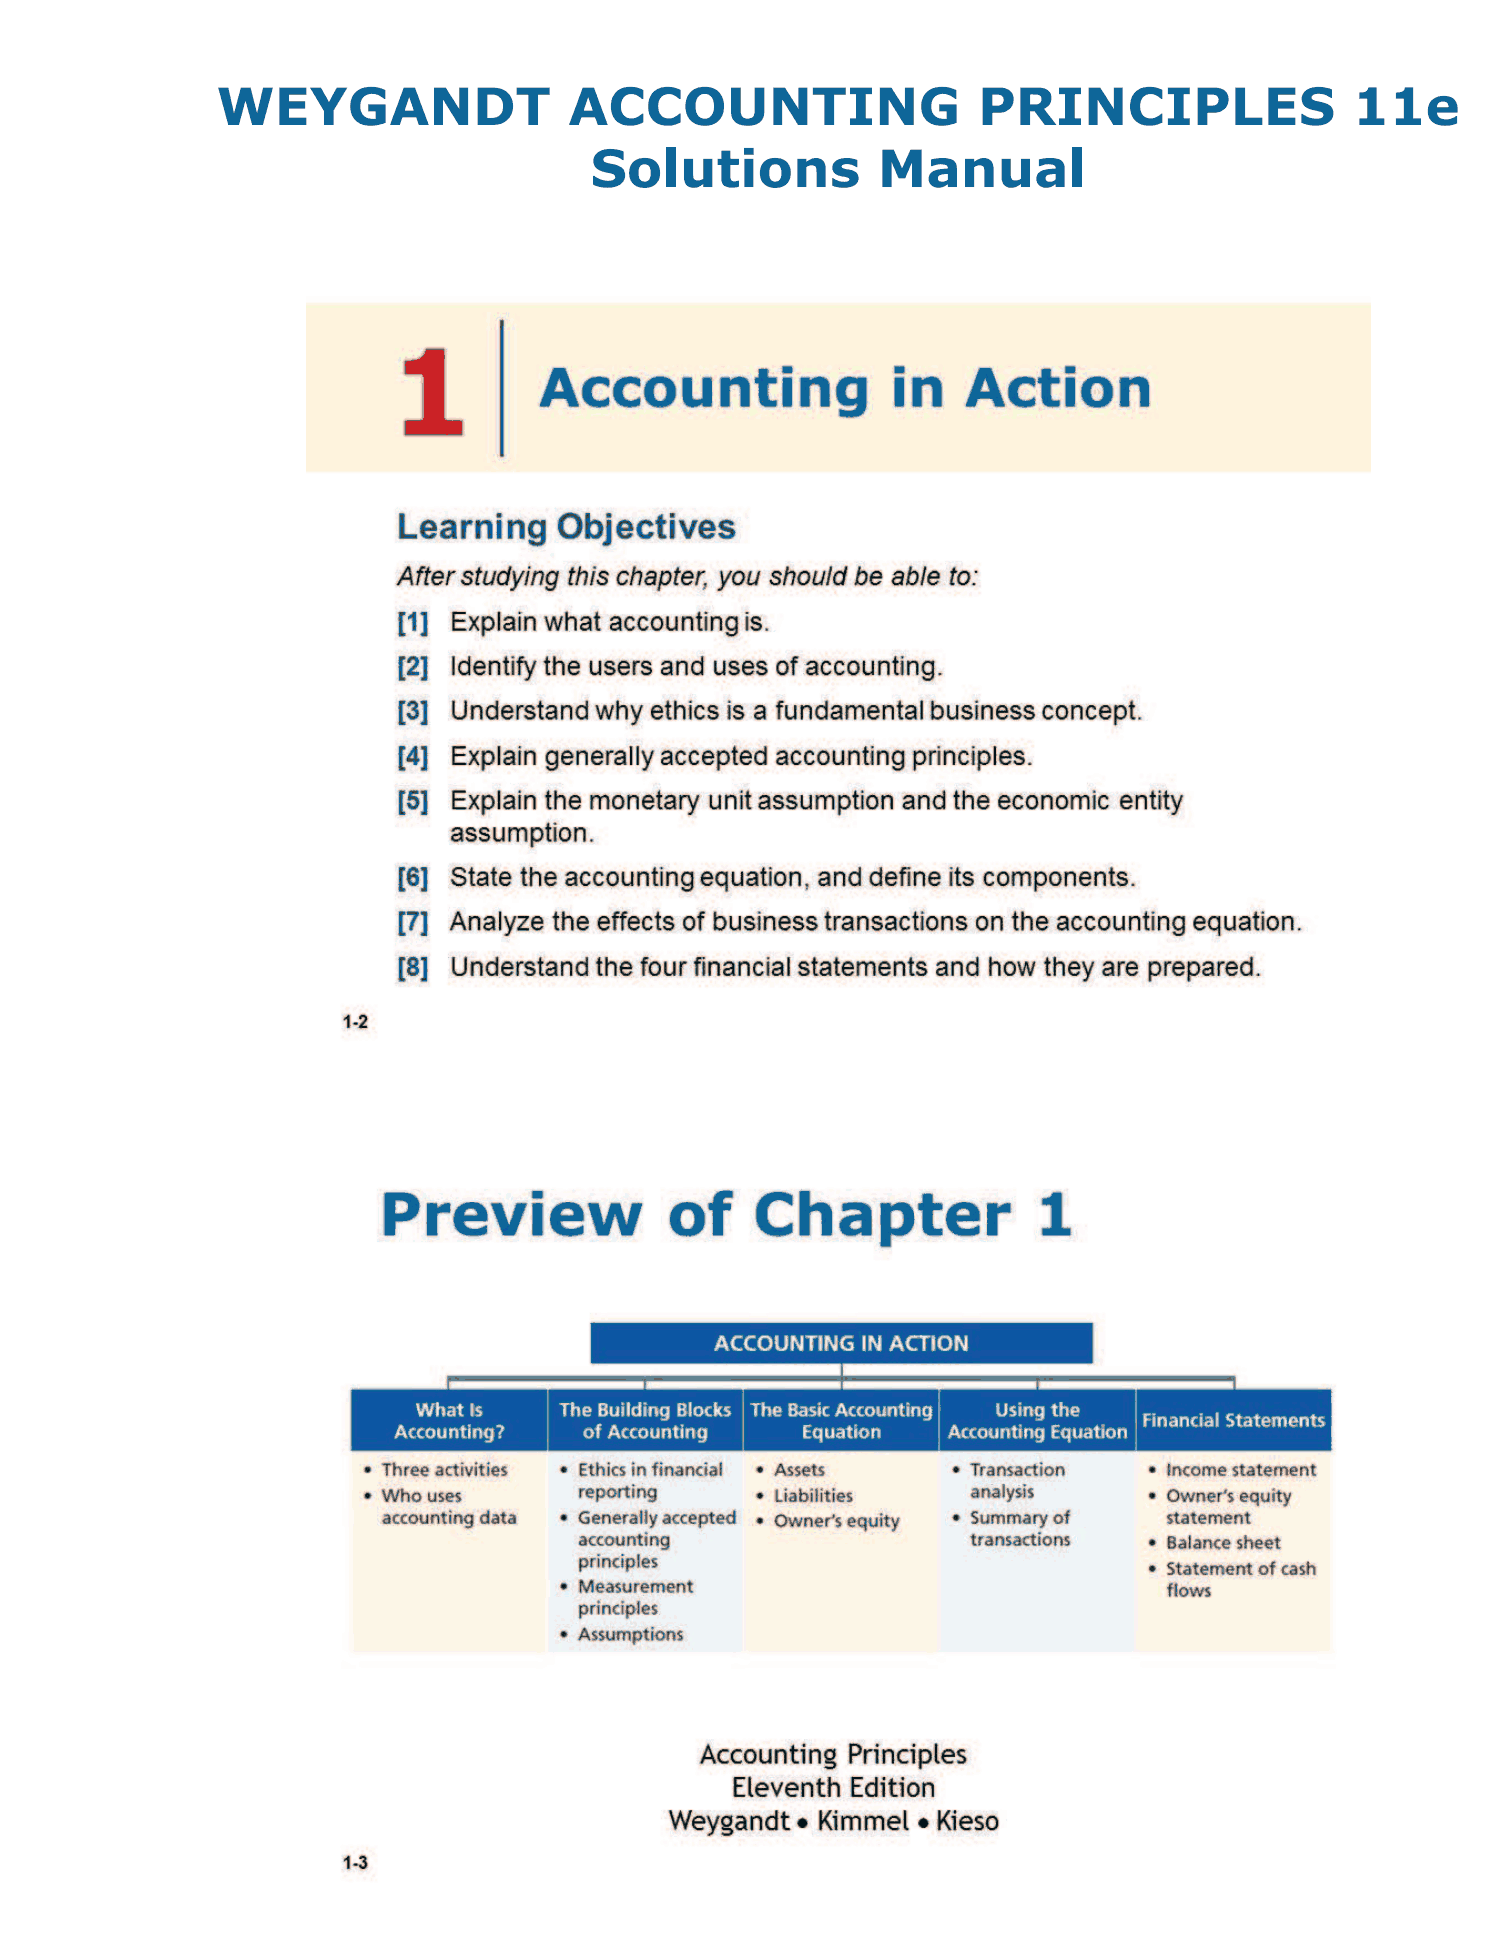 accounting principles kiso This is the accounting principles, volume 1 chapters - 12: working papers to accompany accounting principles, volume 1, 12th edition accounting principles 12 th edition by weygandt, kimmel, and kieso provides students with a clear introduction to fundamental accounting concepts.